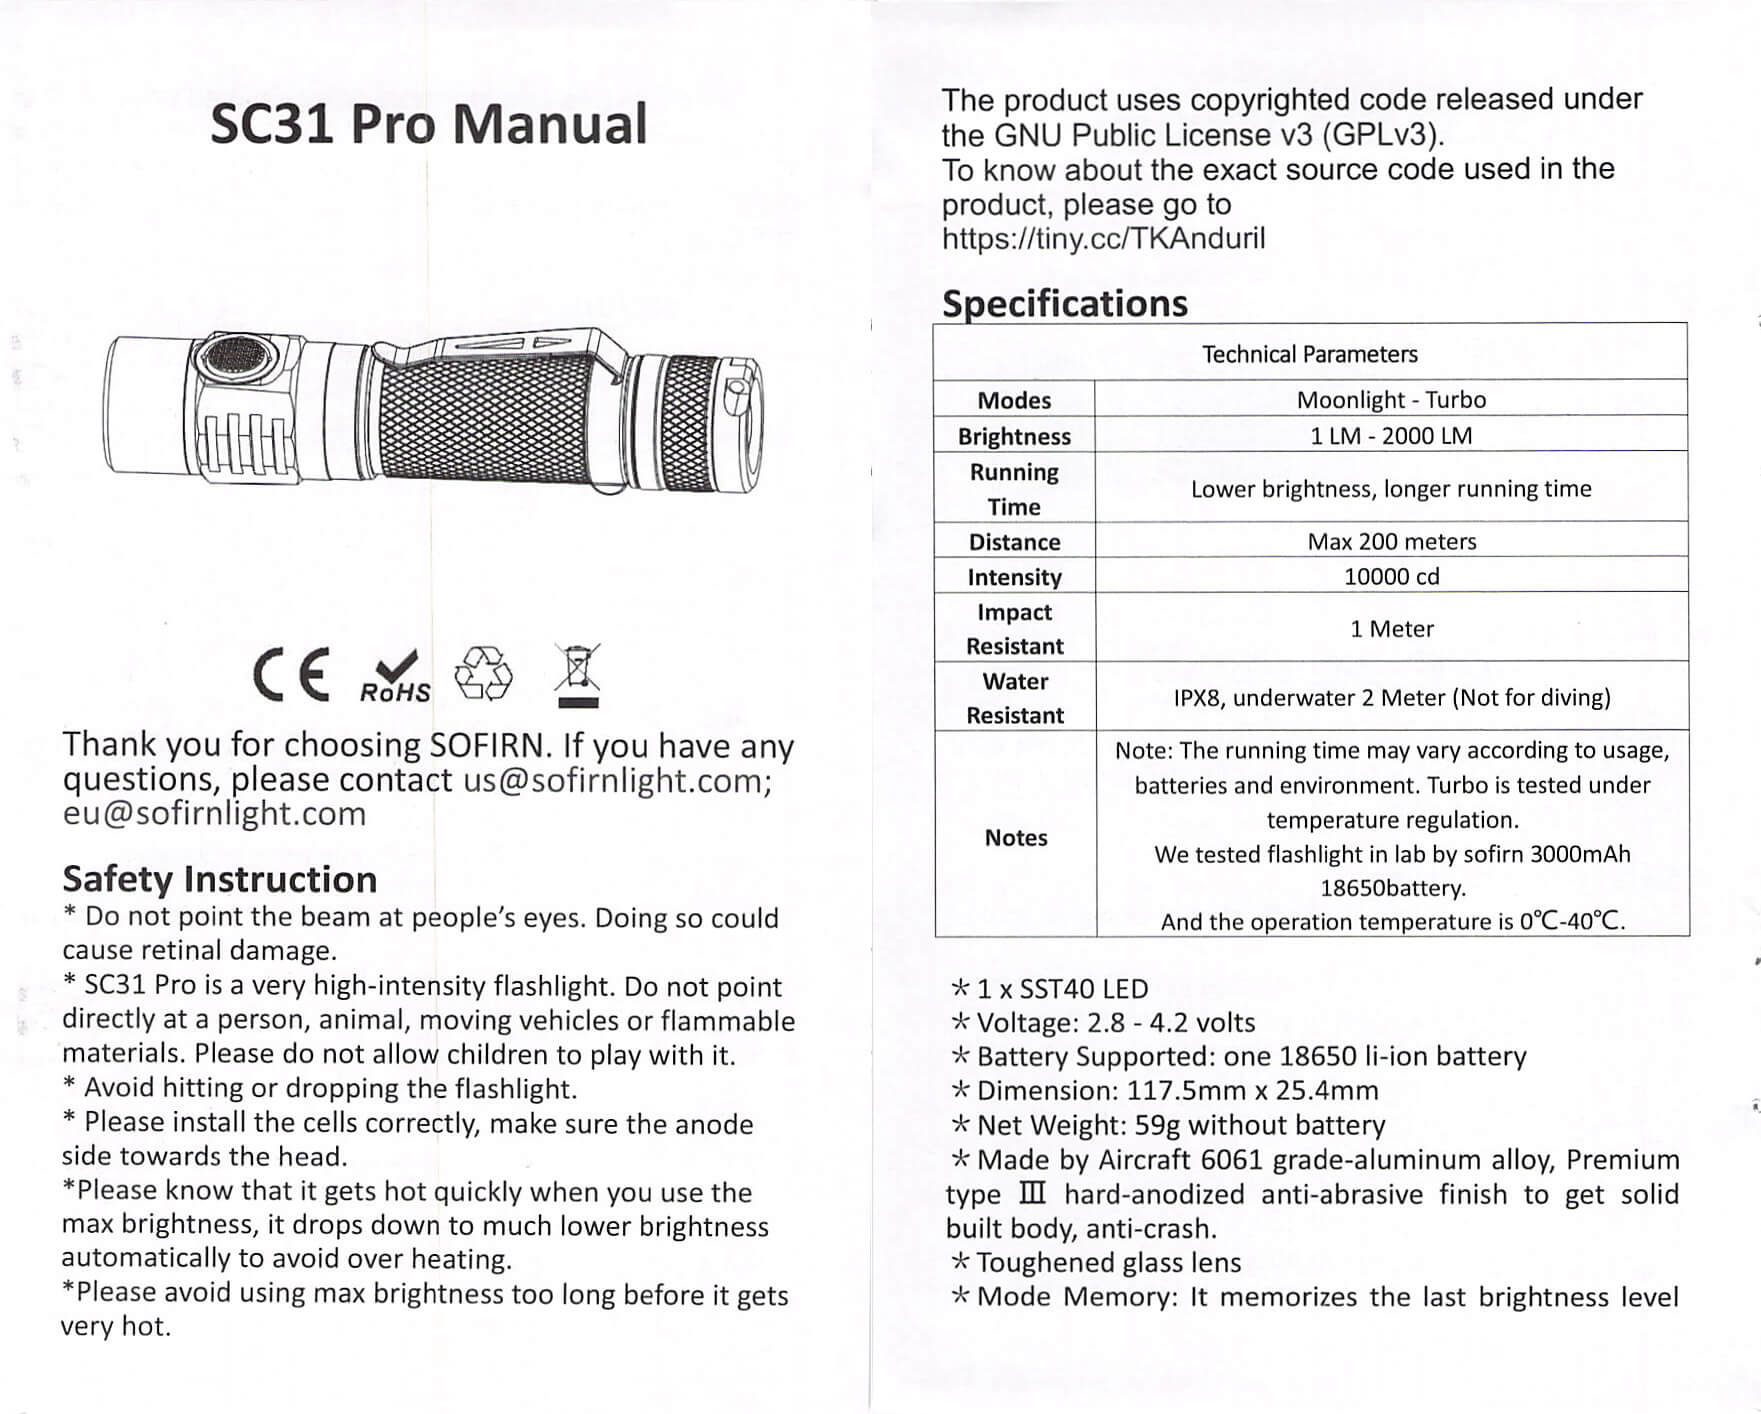 sofirn sc31 pro Andúril 18650 flashlight manual 1